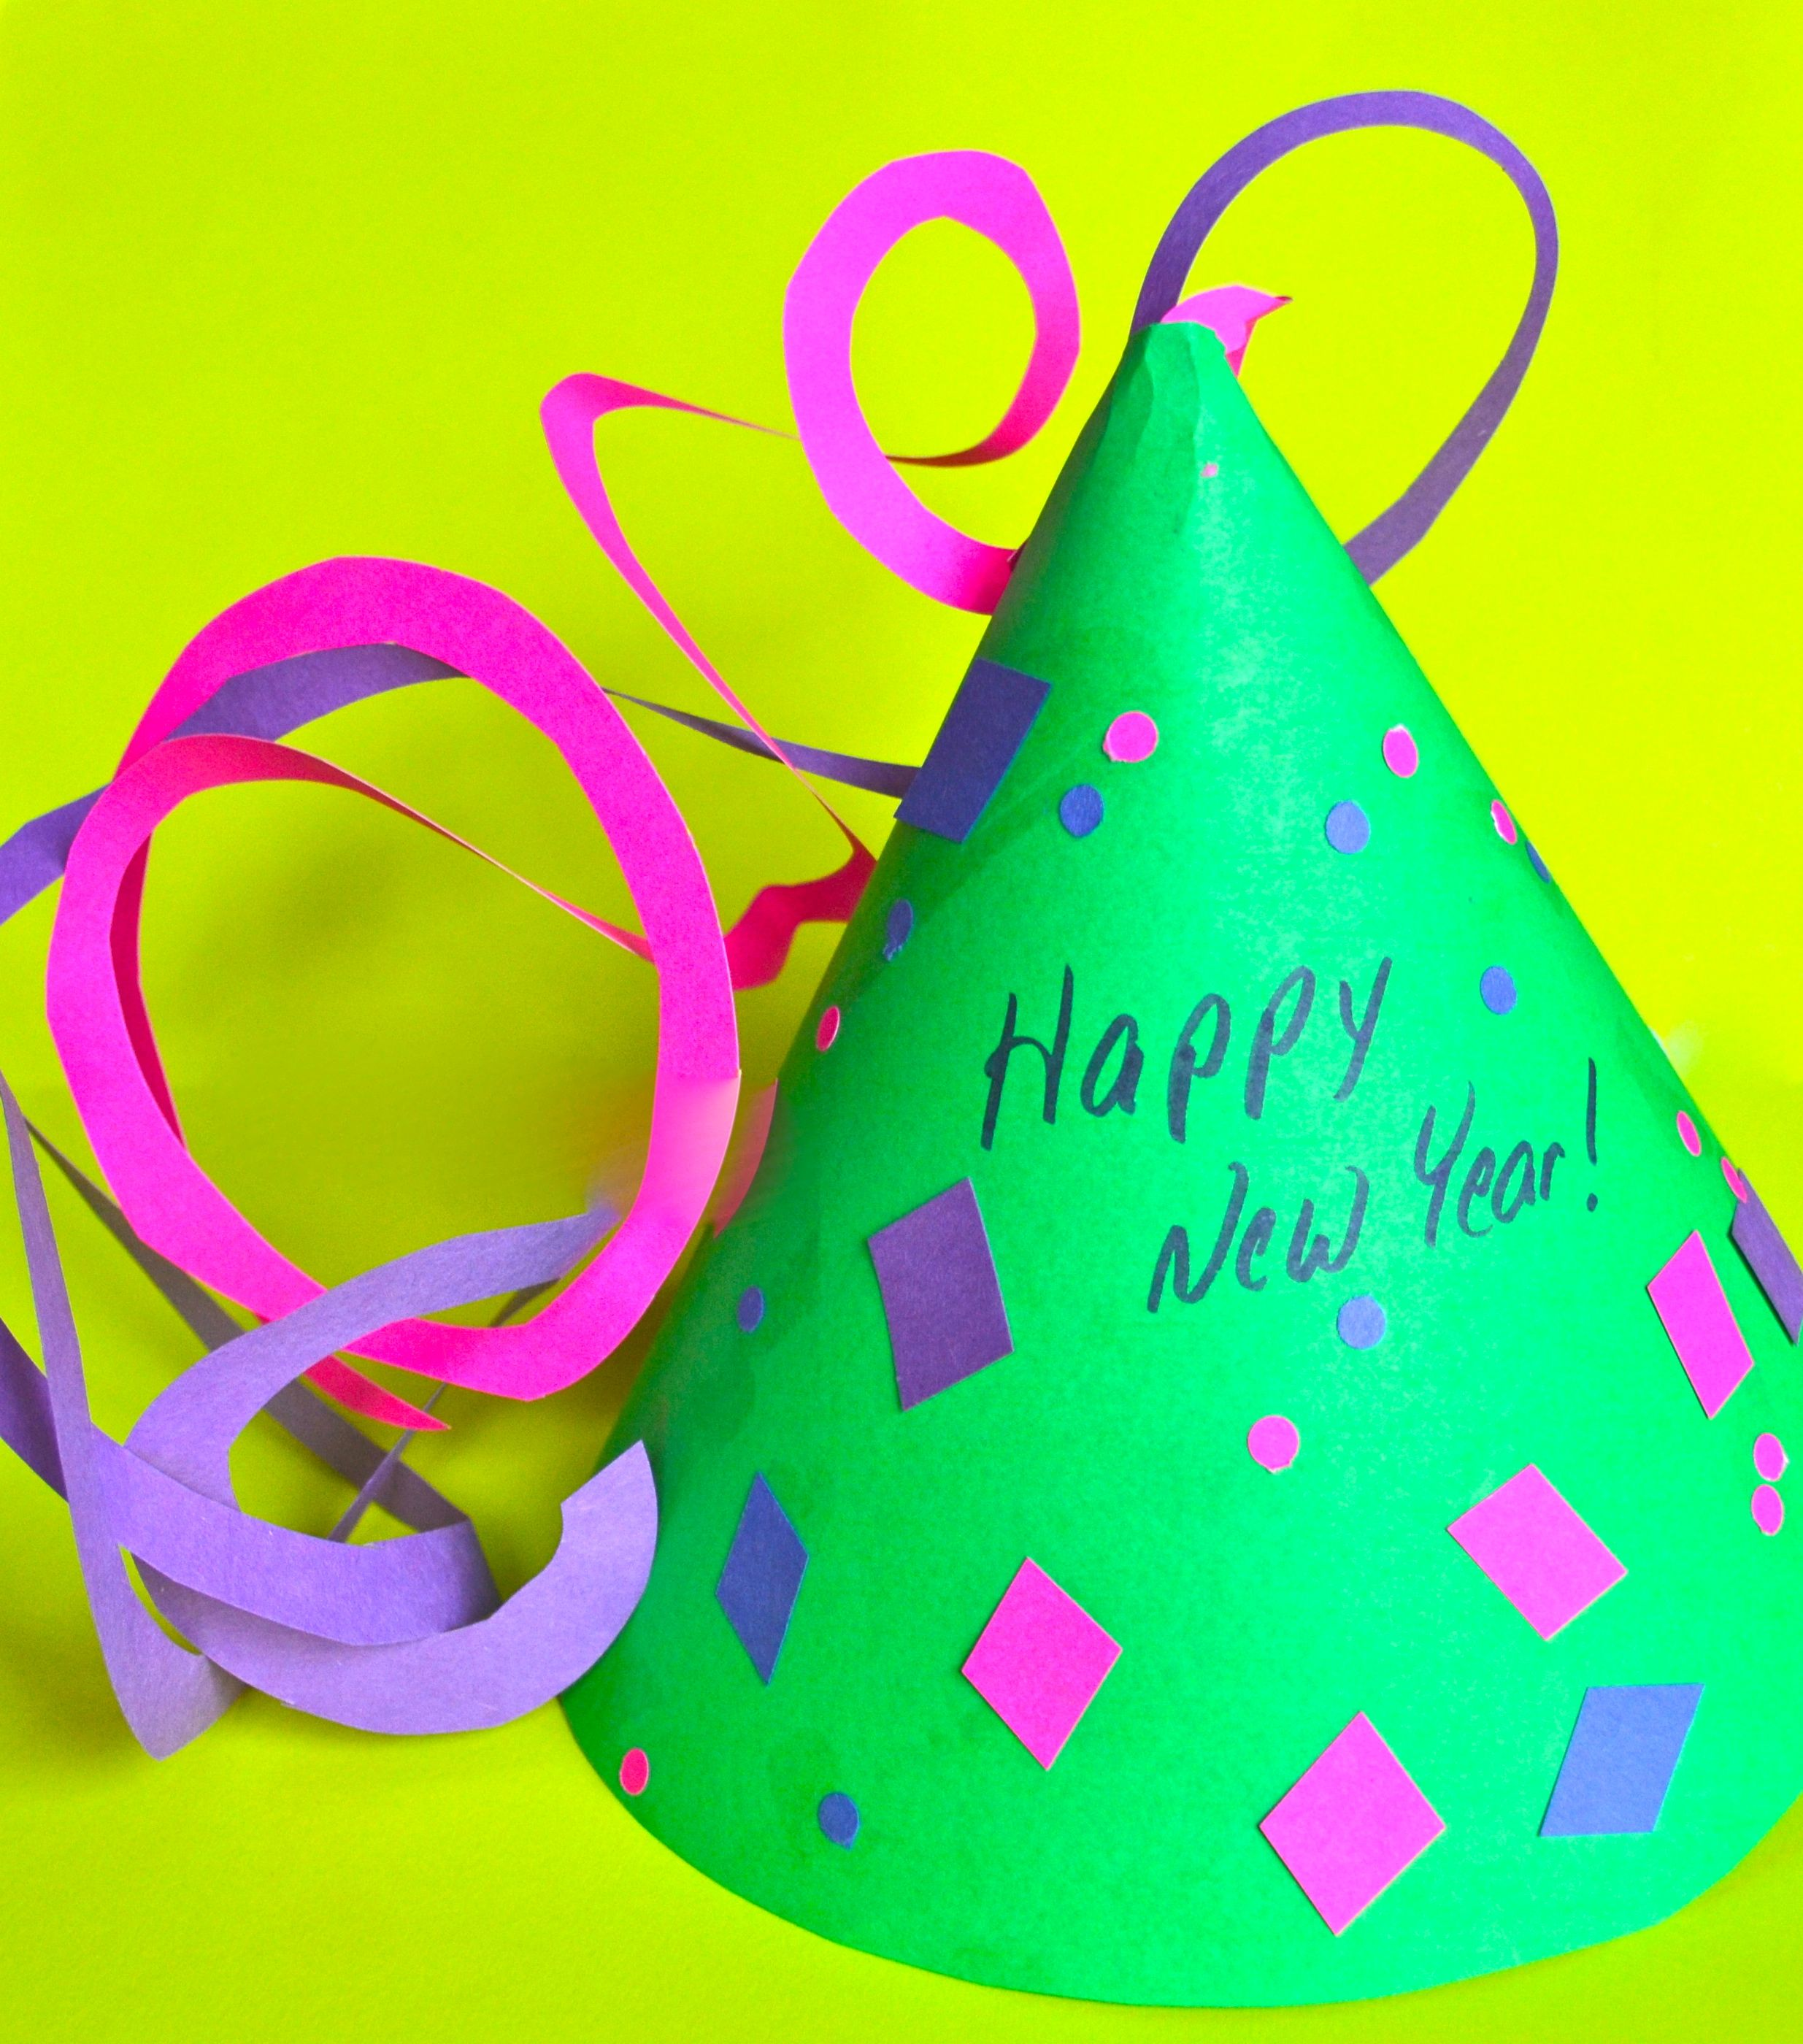 hat eve years craft preschool happy party diy hats preschoolers crafts activities celebrate fun making children creativeconnectionsforkids station creative younger